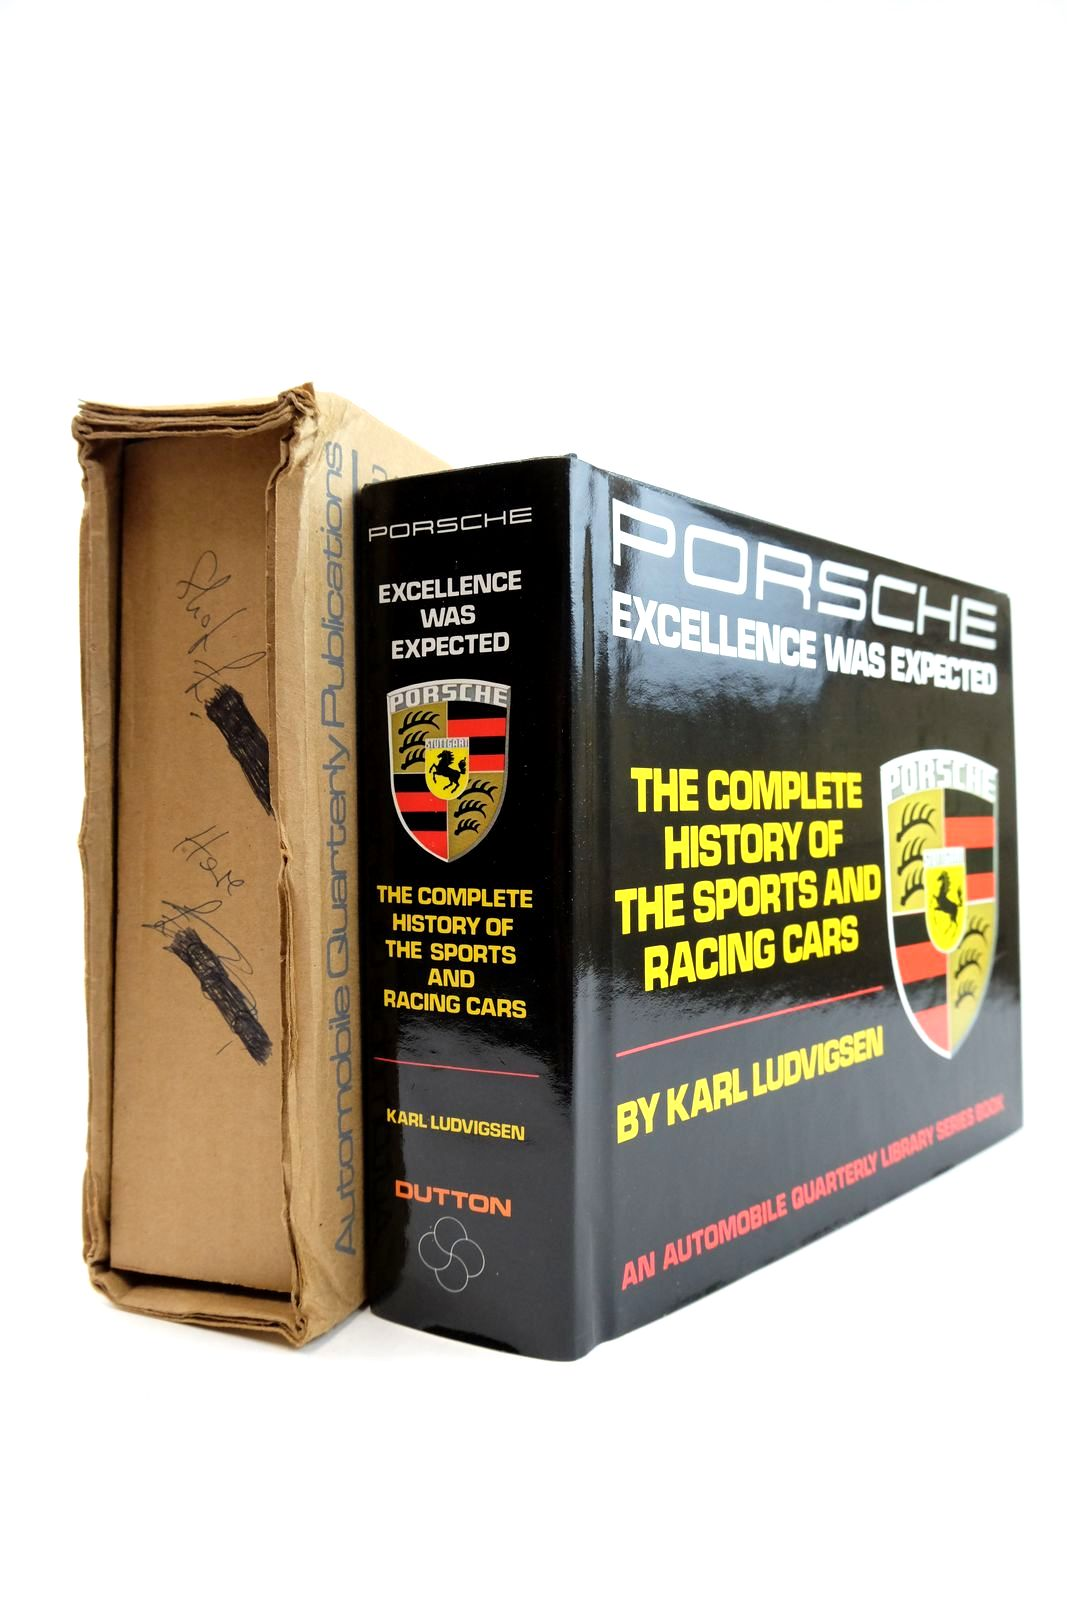 Photo of PORSCHE EXCELLENCE WAS EXPECTED THE COMPLETE HISTORY OF THE SPORTS AND RACING CARS written by Ludvigsen, Karl published by E.P. Dutton & Co. Inc. (STOCK CODE: 2132976)  for sale by Stella & Rose's Books